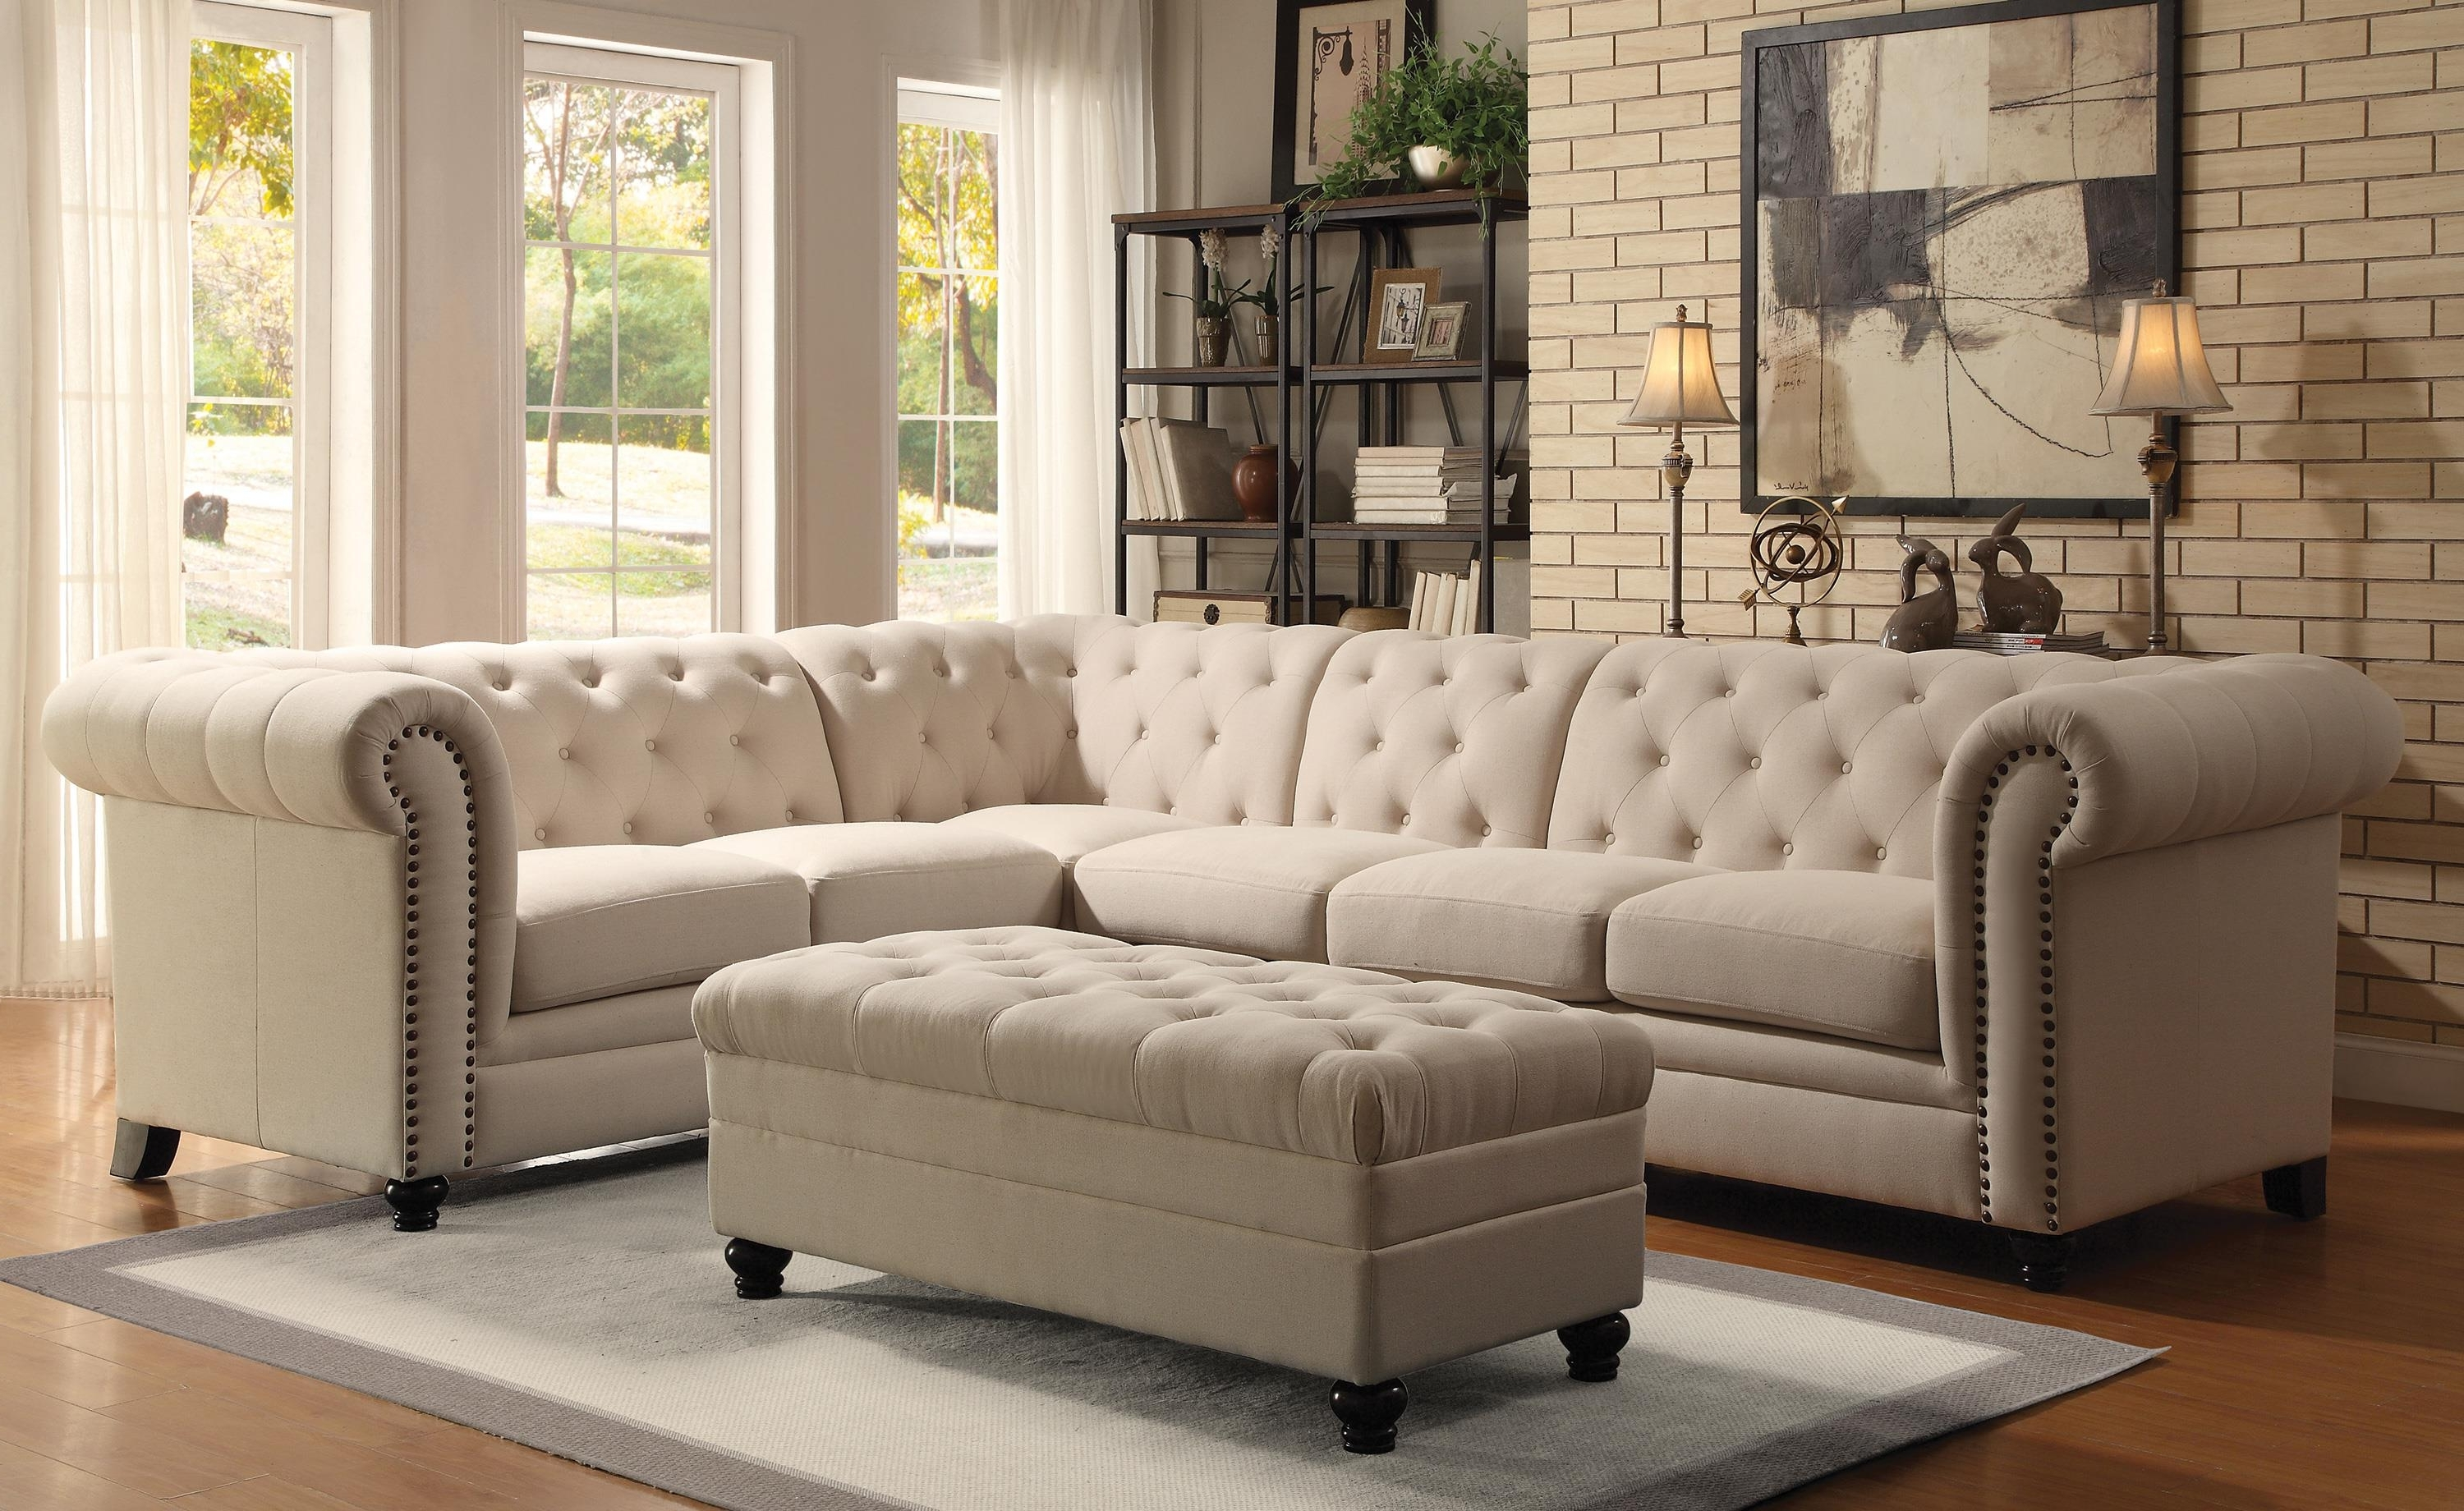 2018 Light Brown Fabric Ashley Furniture Sectional L Sofa Sleeper With Regarding Ashley Tufted Sofas (View 3 of 15)